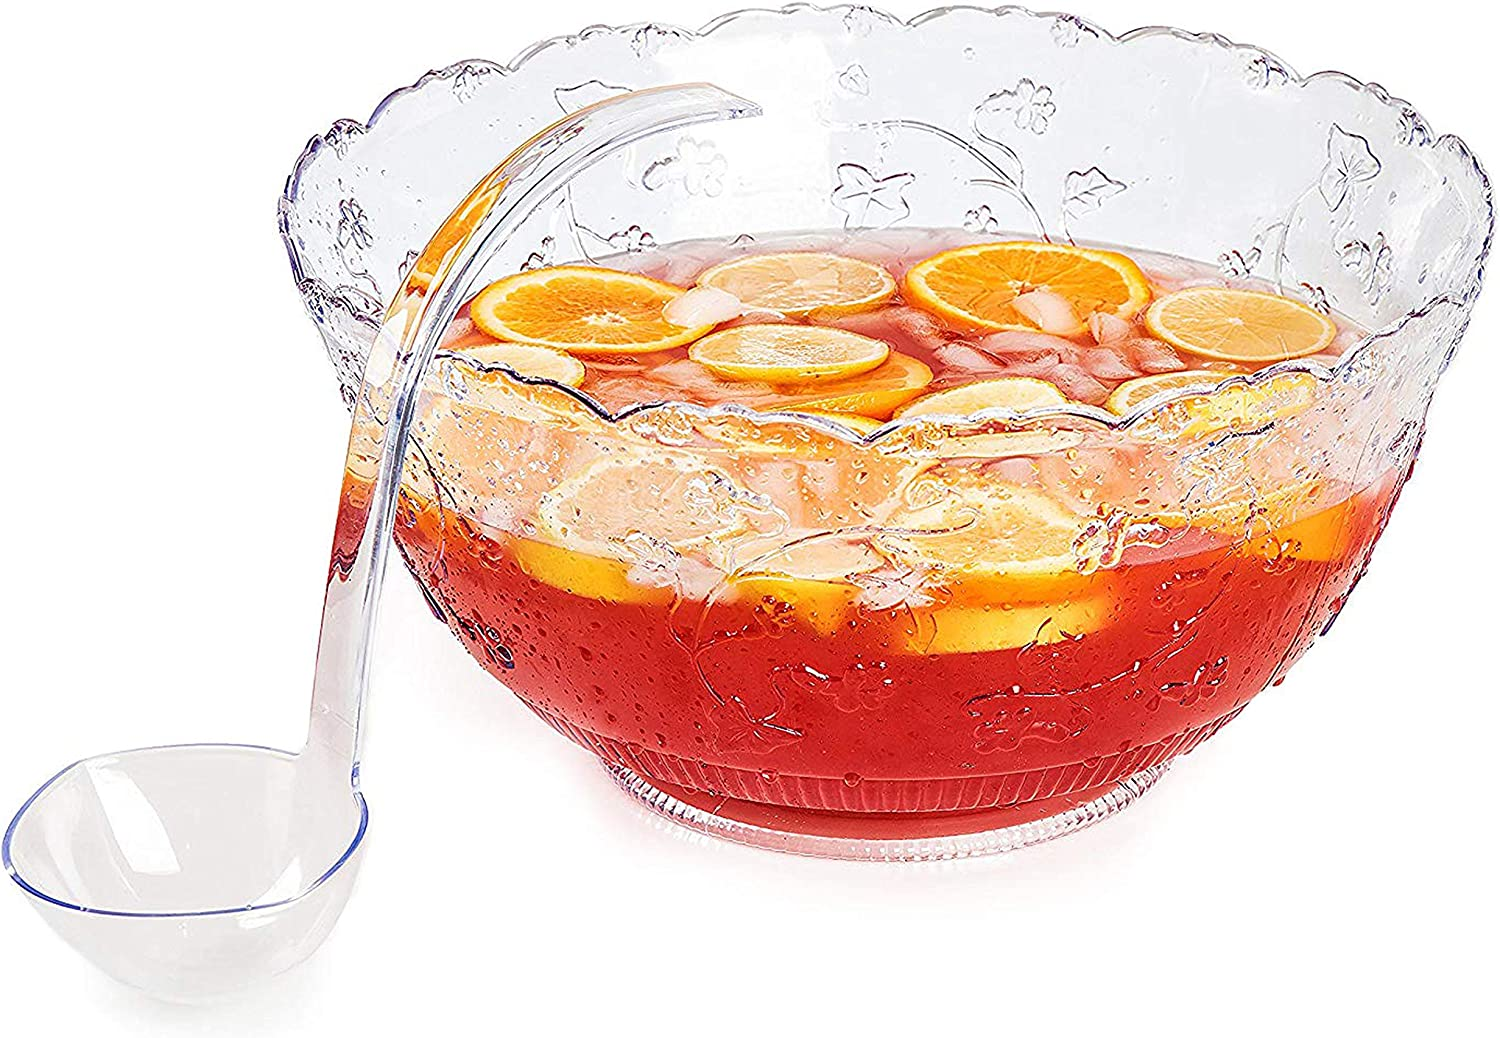 Large 2 Gallon Bowl With 5 oz Ladle by Upper Midland Products Premium Quality Plastic Punch Bowl With Ladle